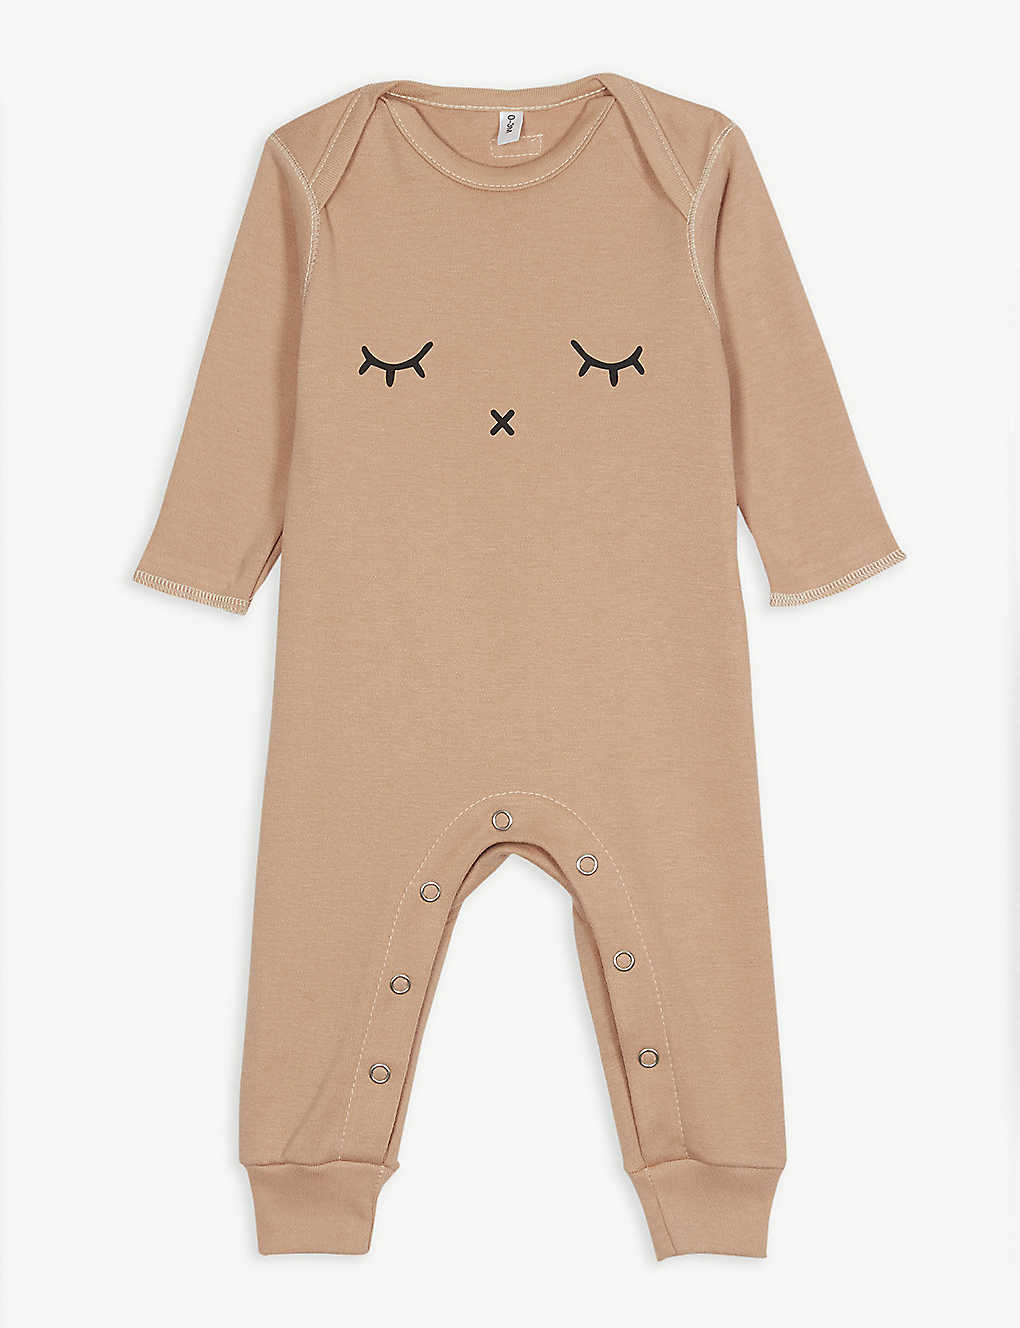 ORGANIC ZOO: Sleepy organic-cotton sleepsuit 0-18 months